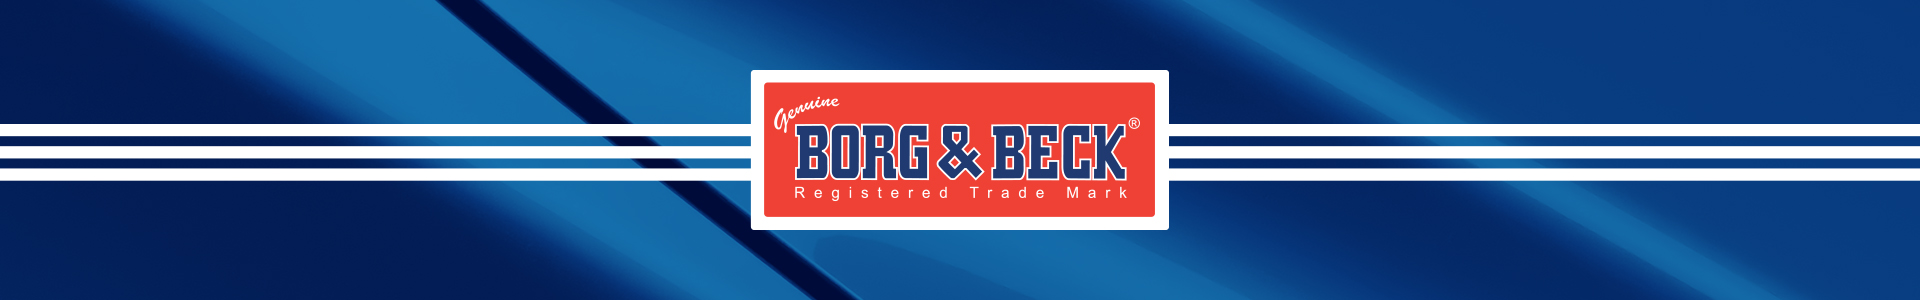 Automotive Aftermarket Parts Supplier Home Of First Line Borg Beck